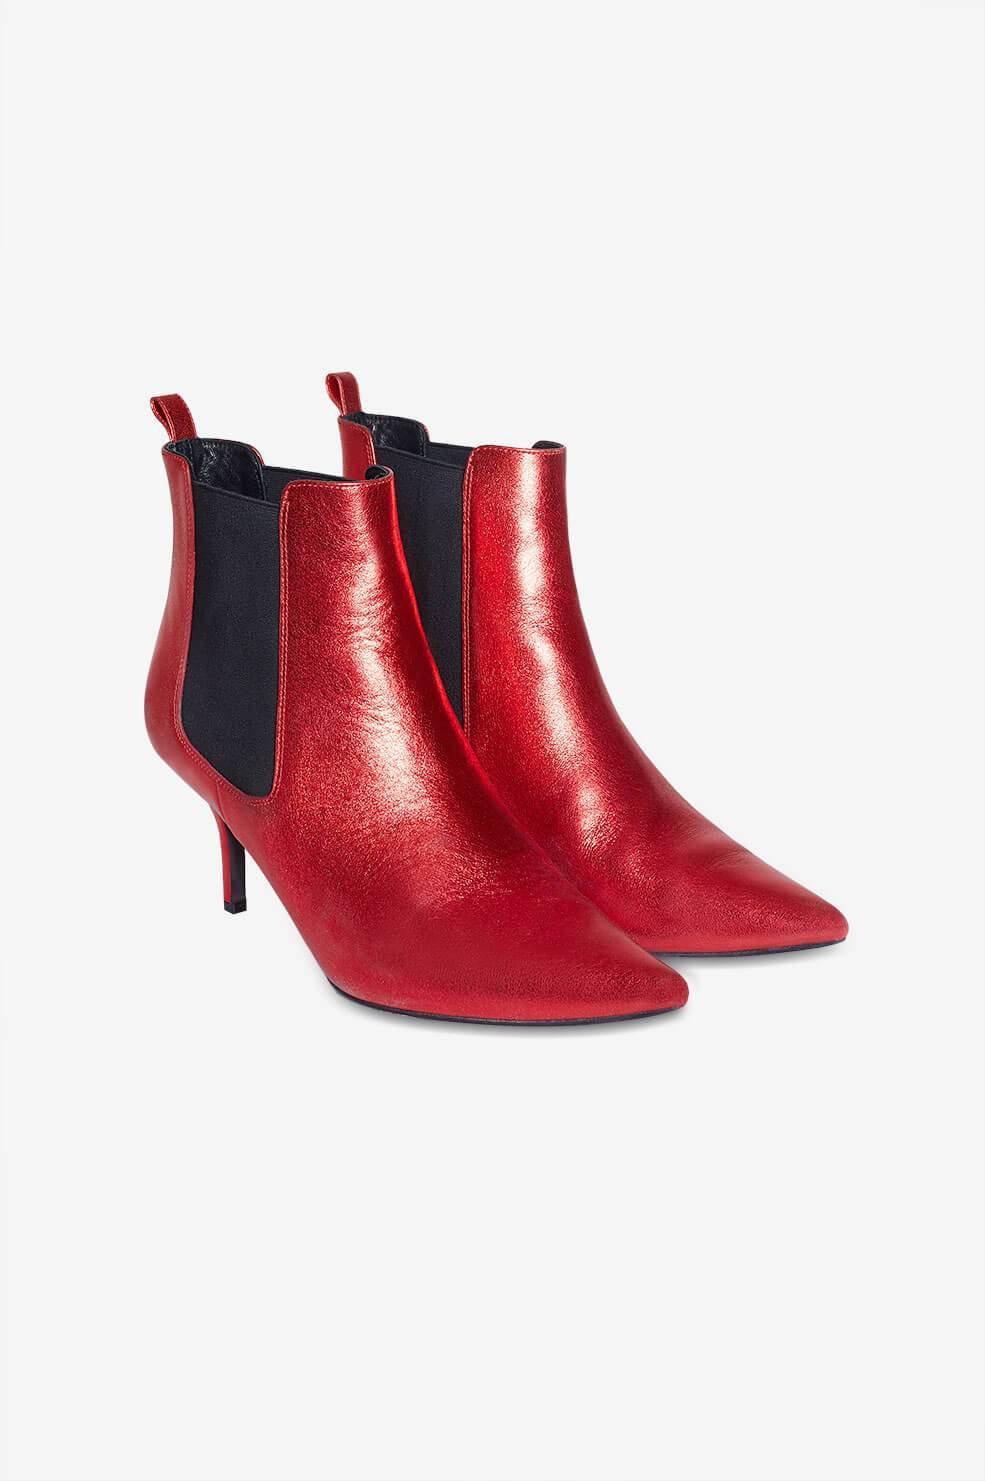 ANINE BING STEVIE BOOTS - RED METALLIC